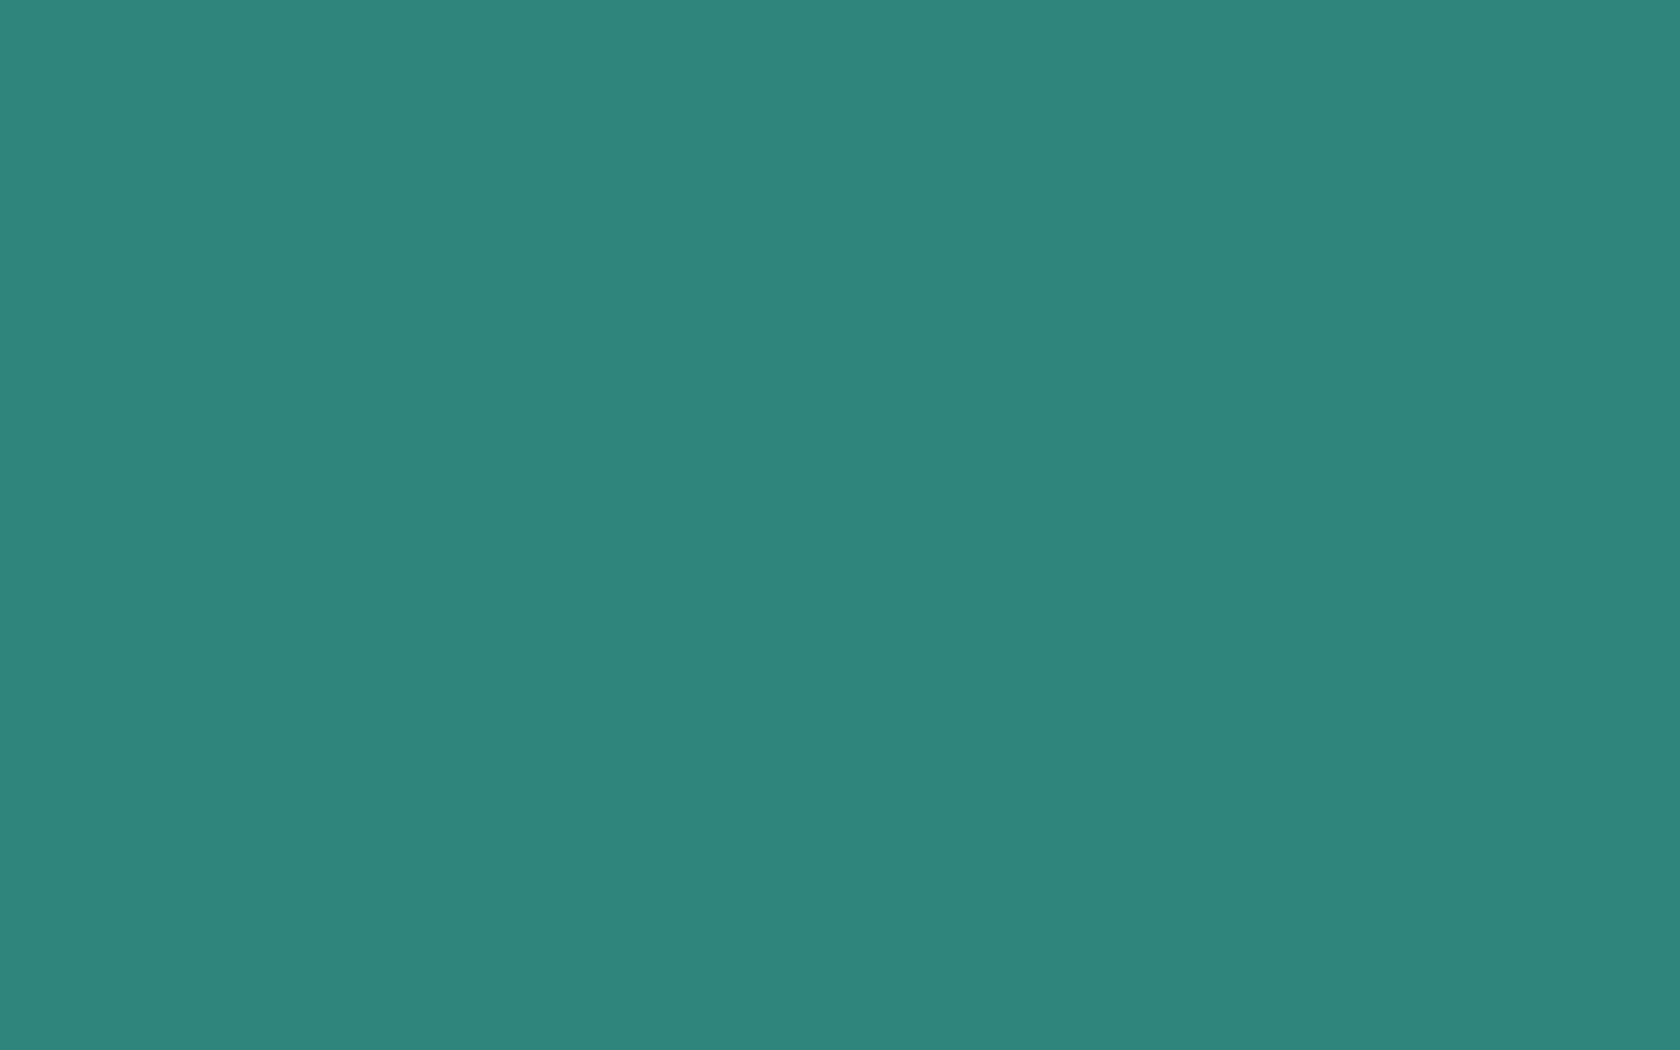 1680x1050 Celadon Green Solid Color Background